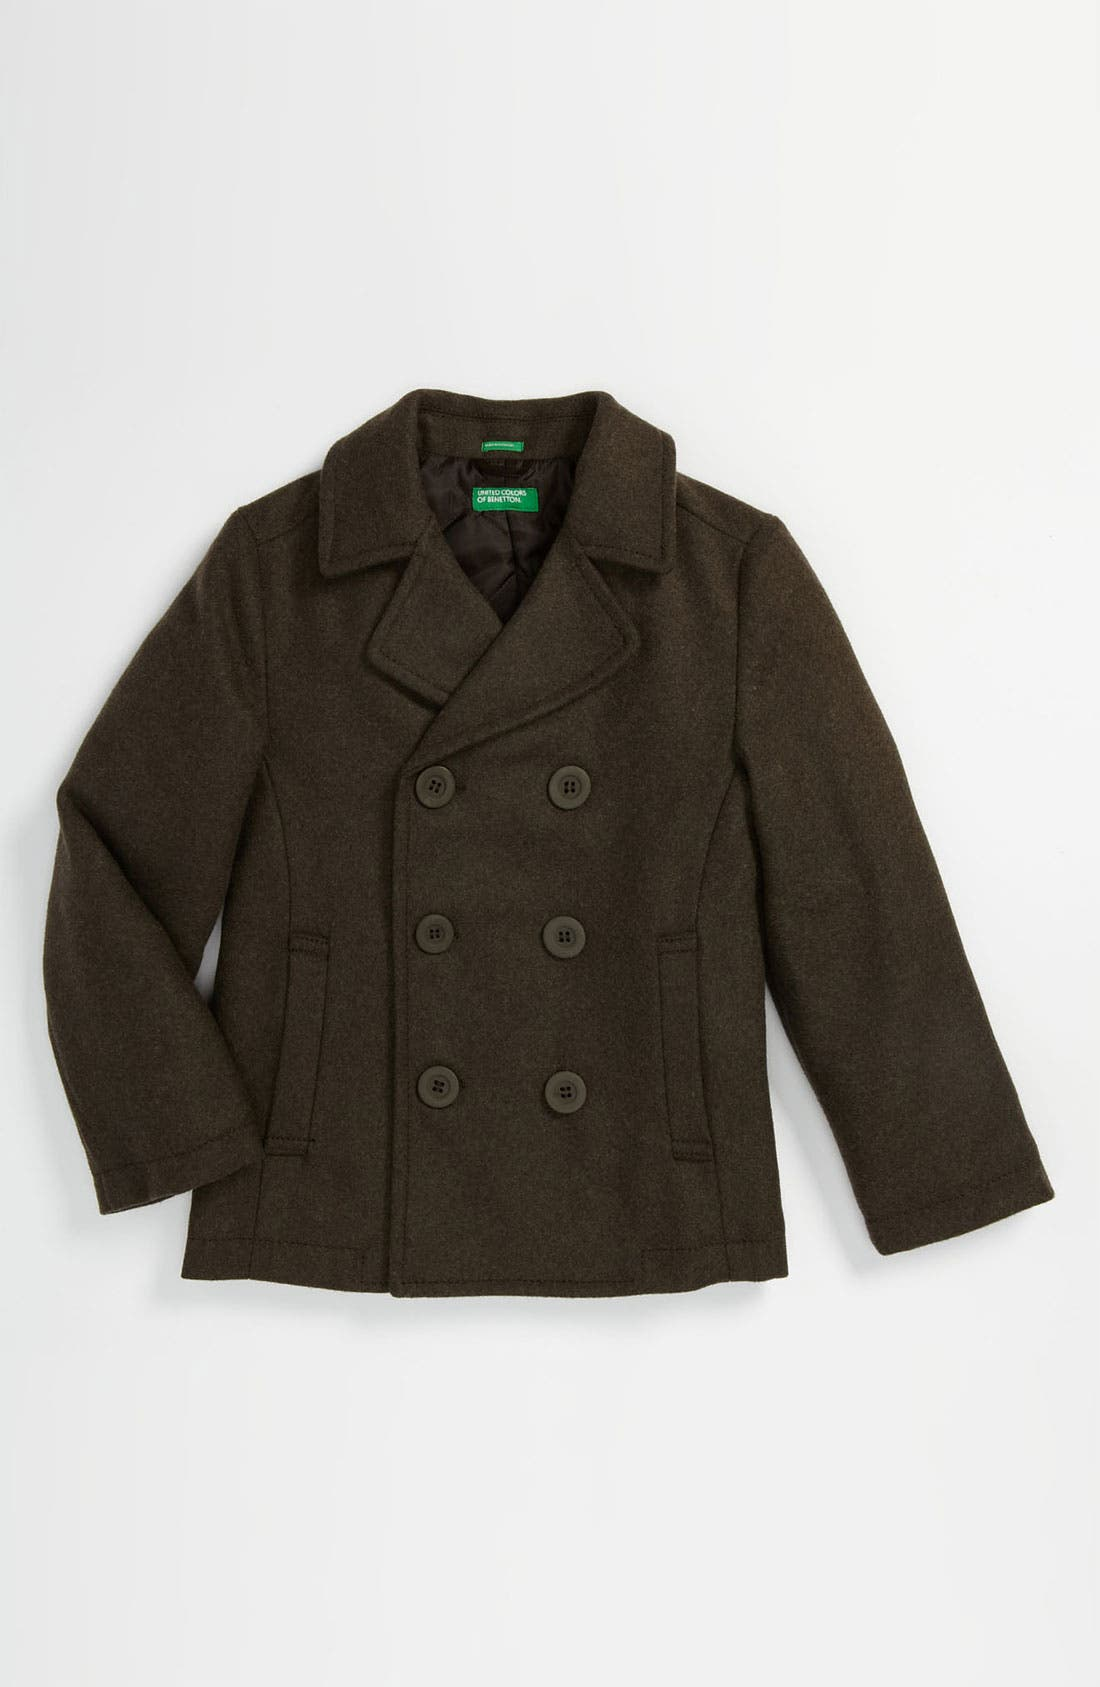 Alternate Image 1 Selected - United Colors of Benetton Kids Peacoat (Little Boys & Big Boys)